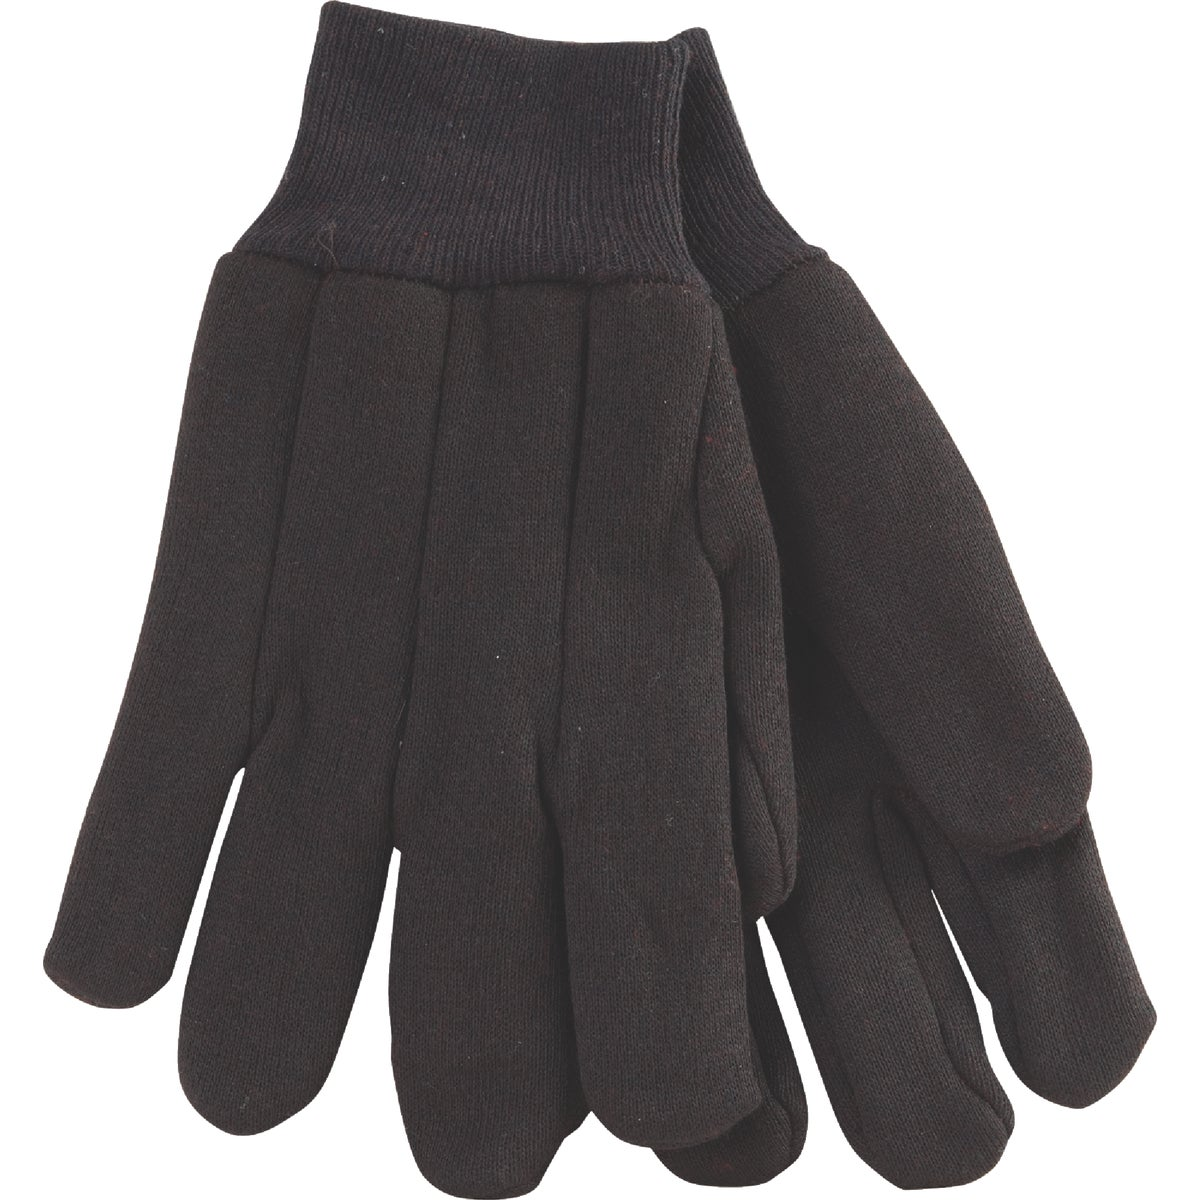 LRG JERSEY LINED GLOVE - 760256 by Do it Best